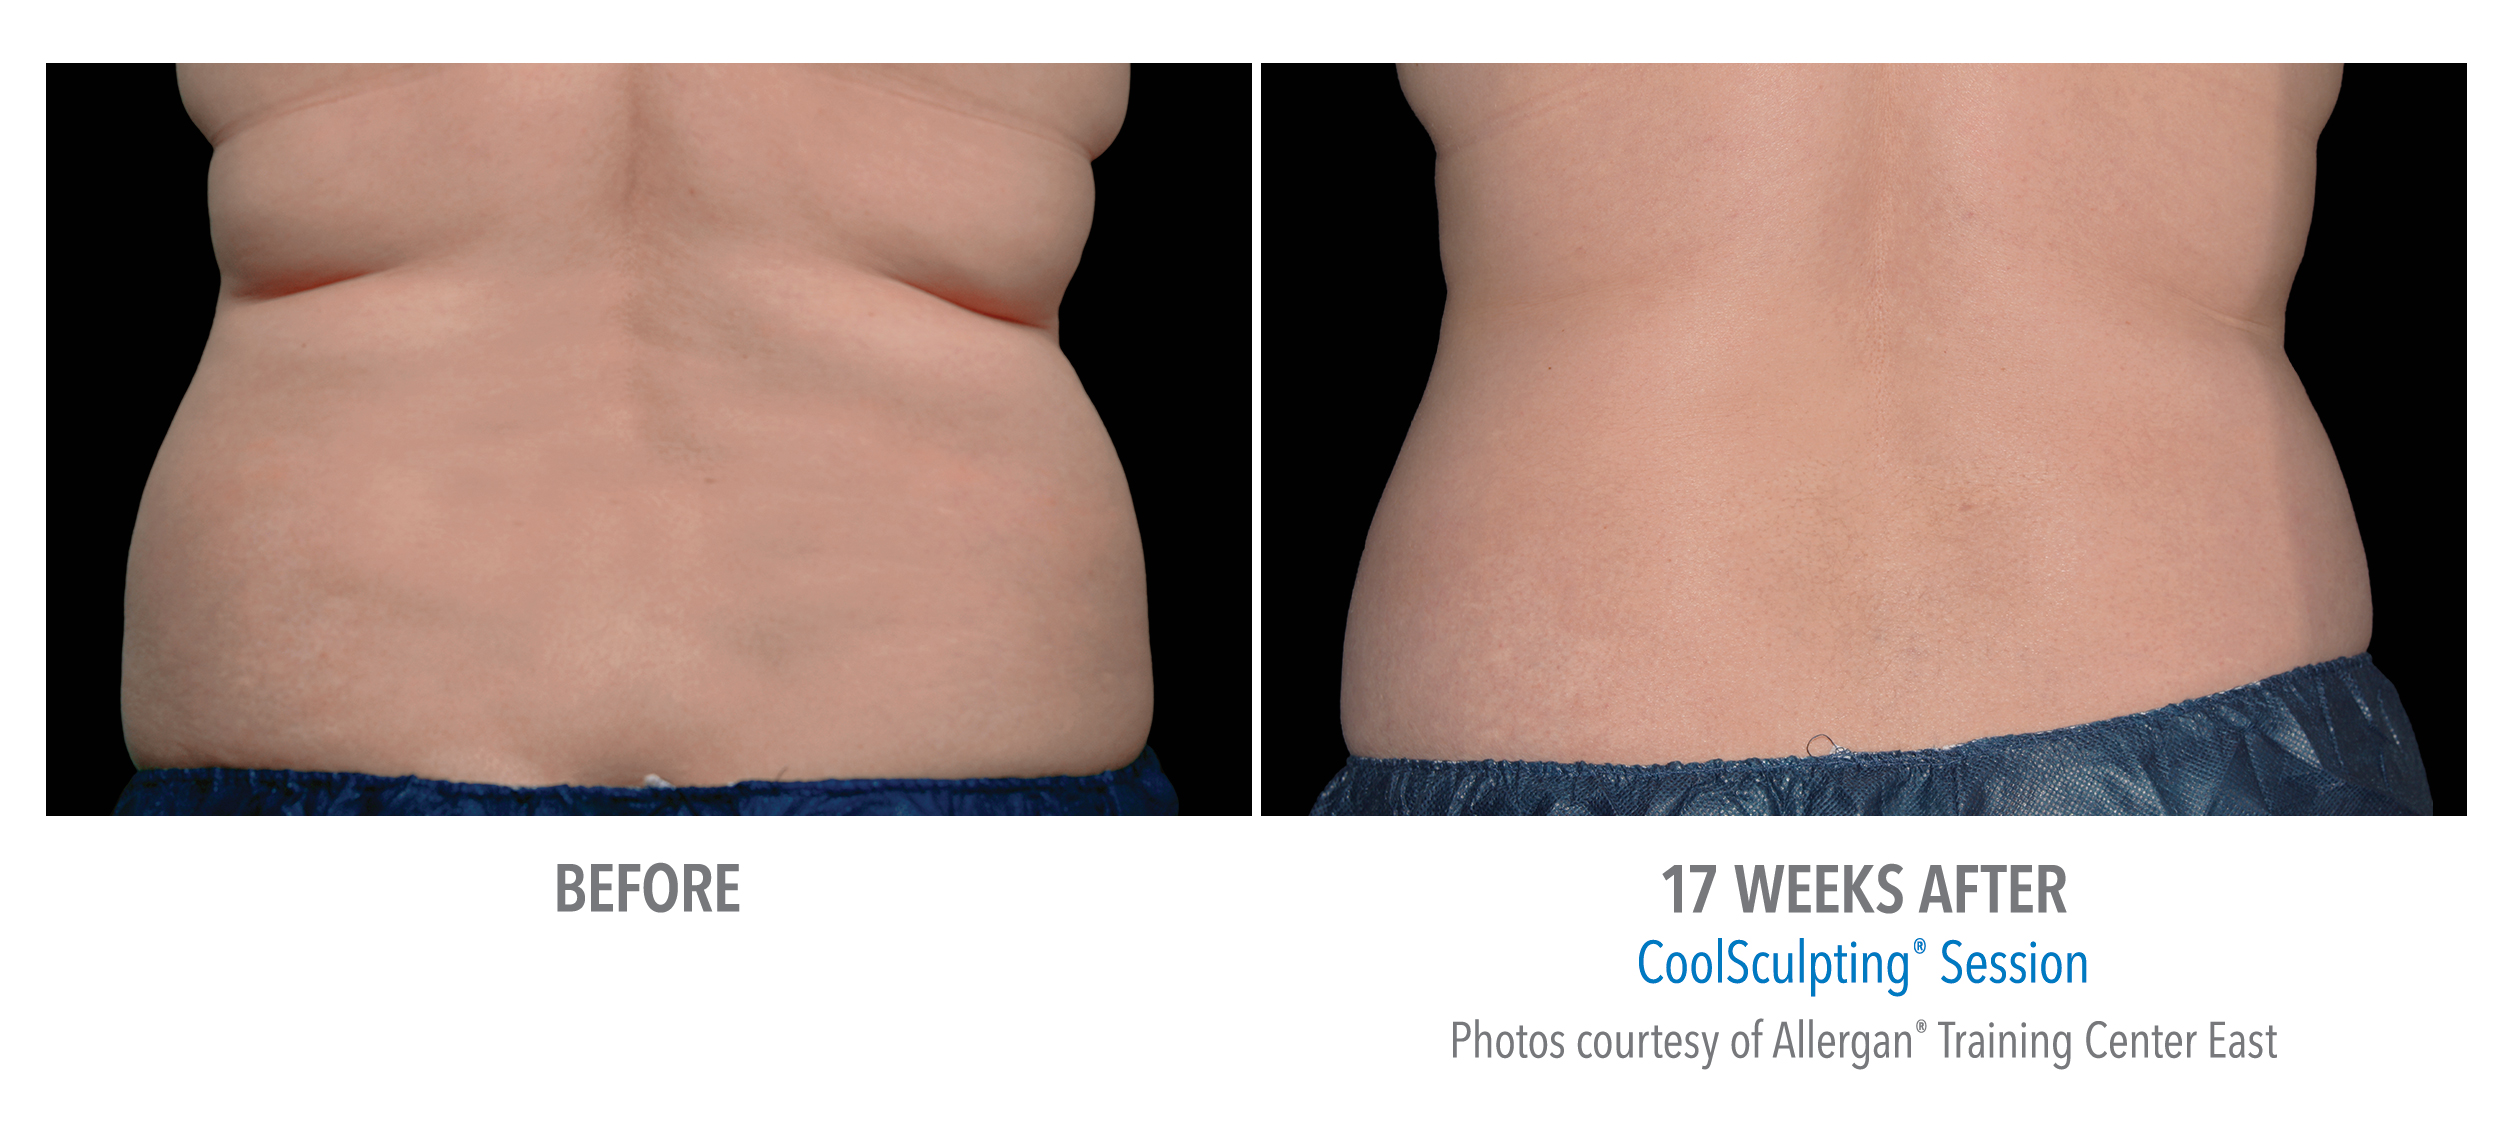 CoolSculpting back and flank fat reduction before and after image